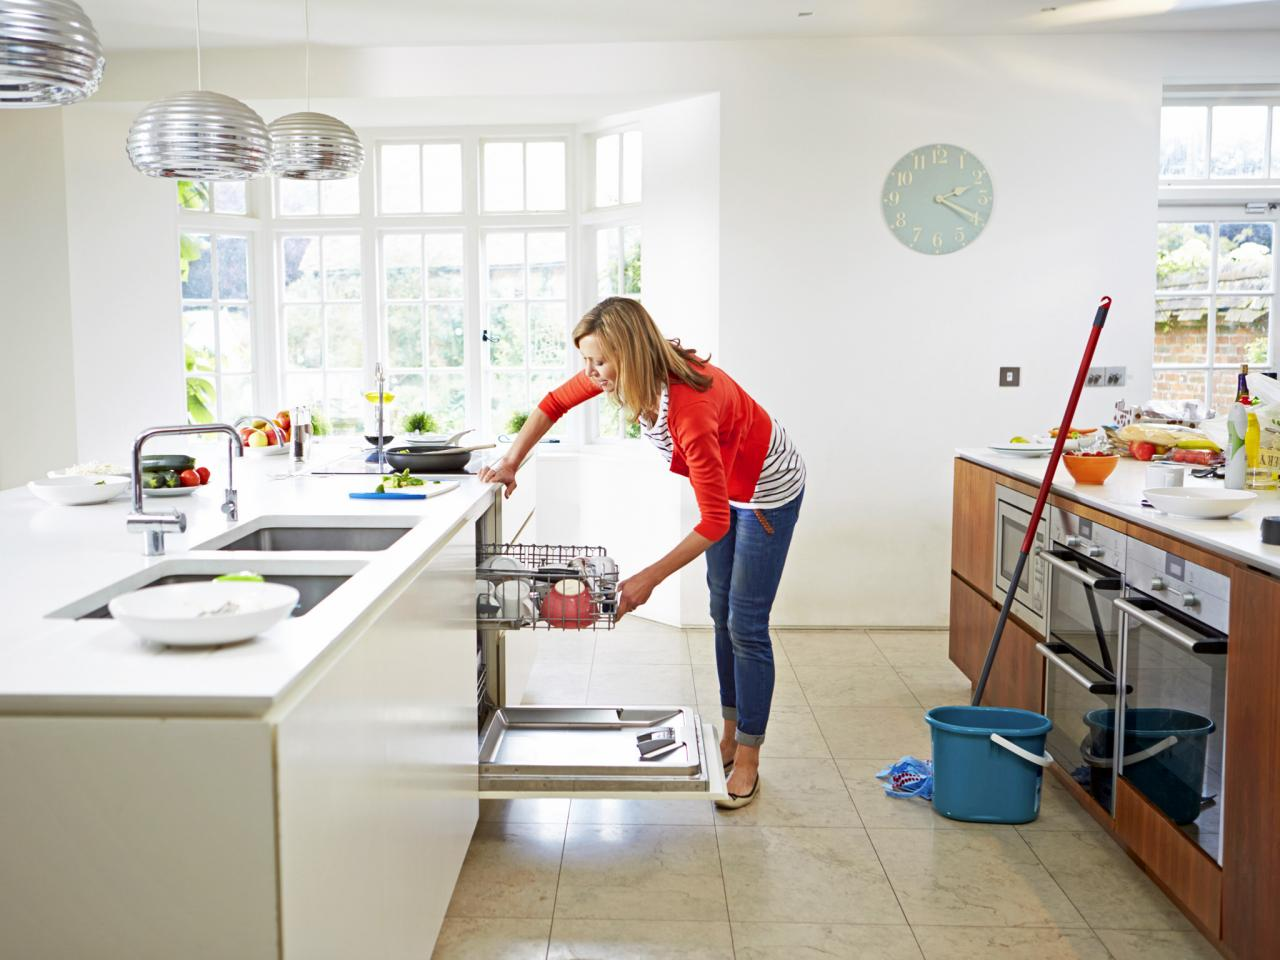 Easy methods to clean your house • Isa Serv, Maids Services